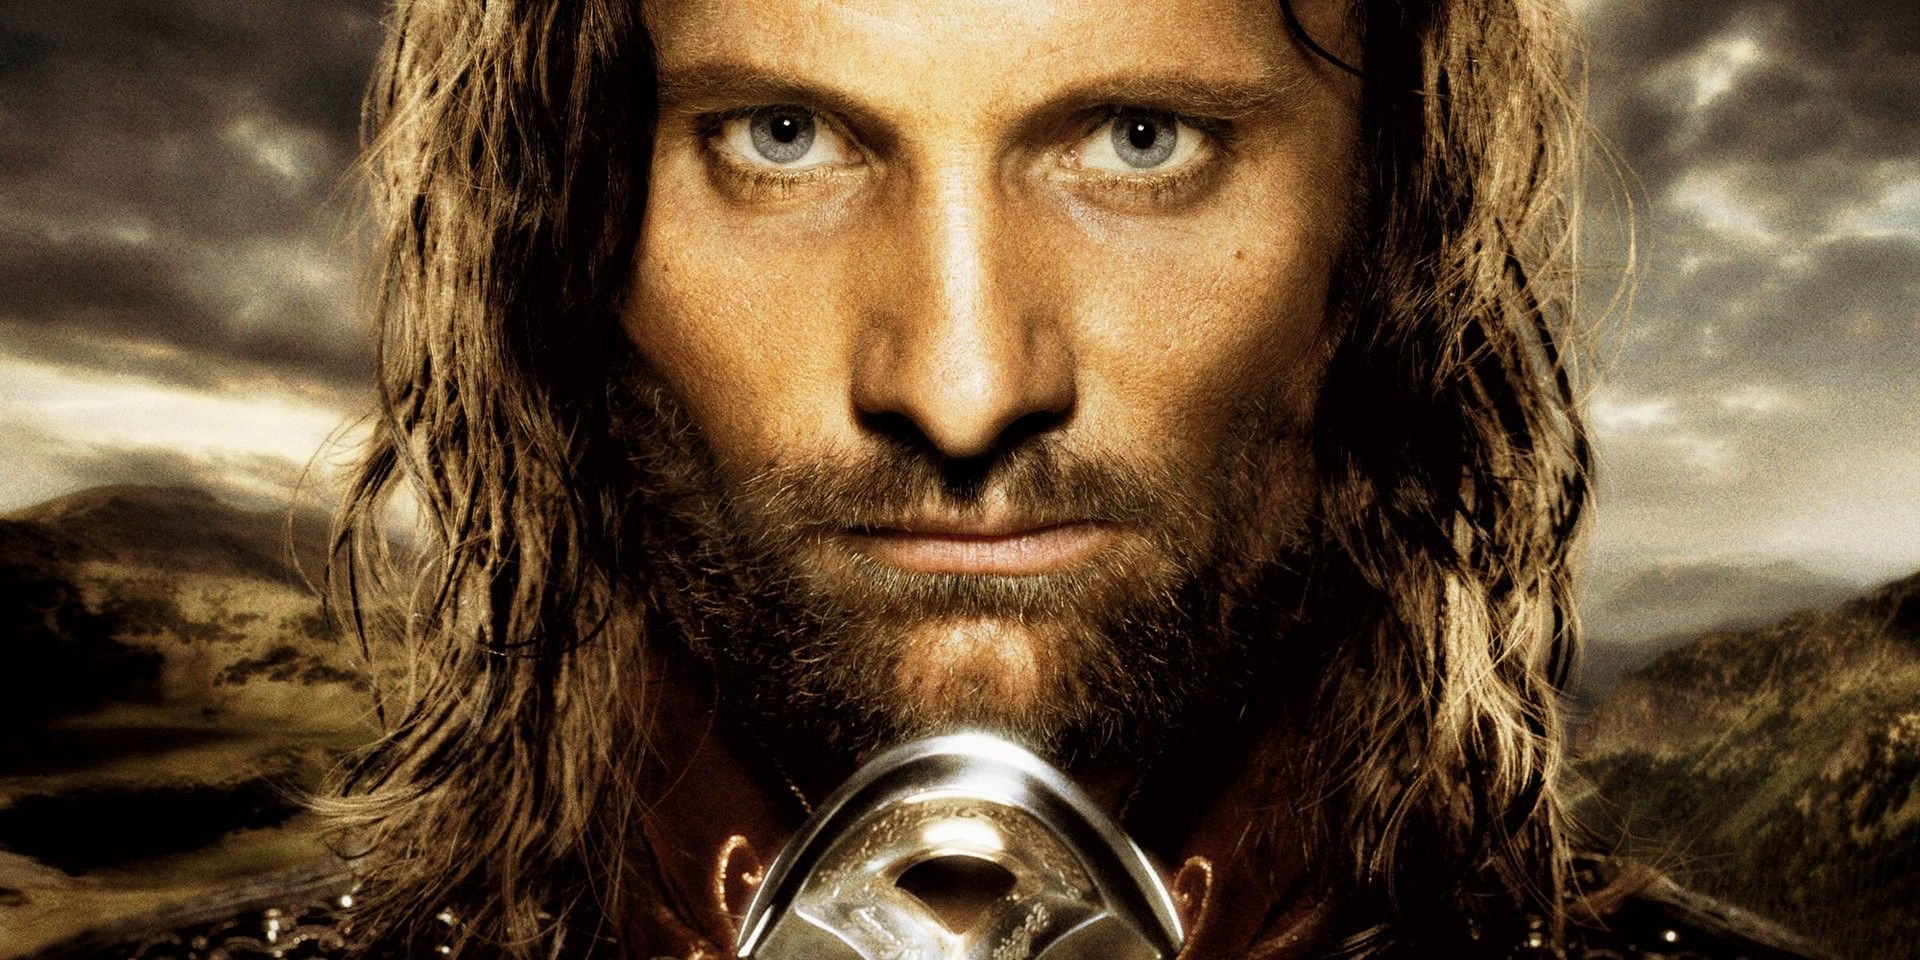 Amazon's Lord of the Rings Cost Nearly Half a Billion Dollars for Season 1